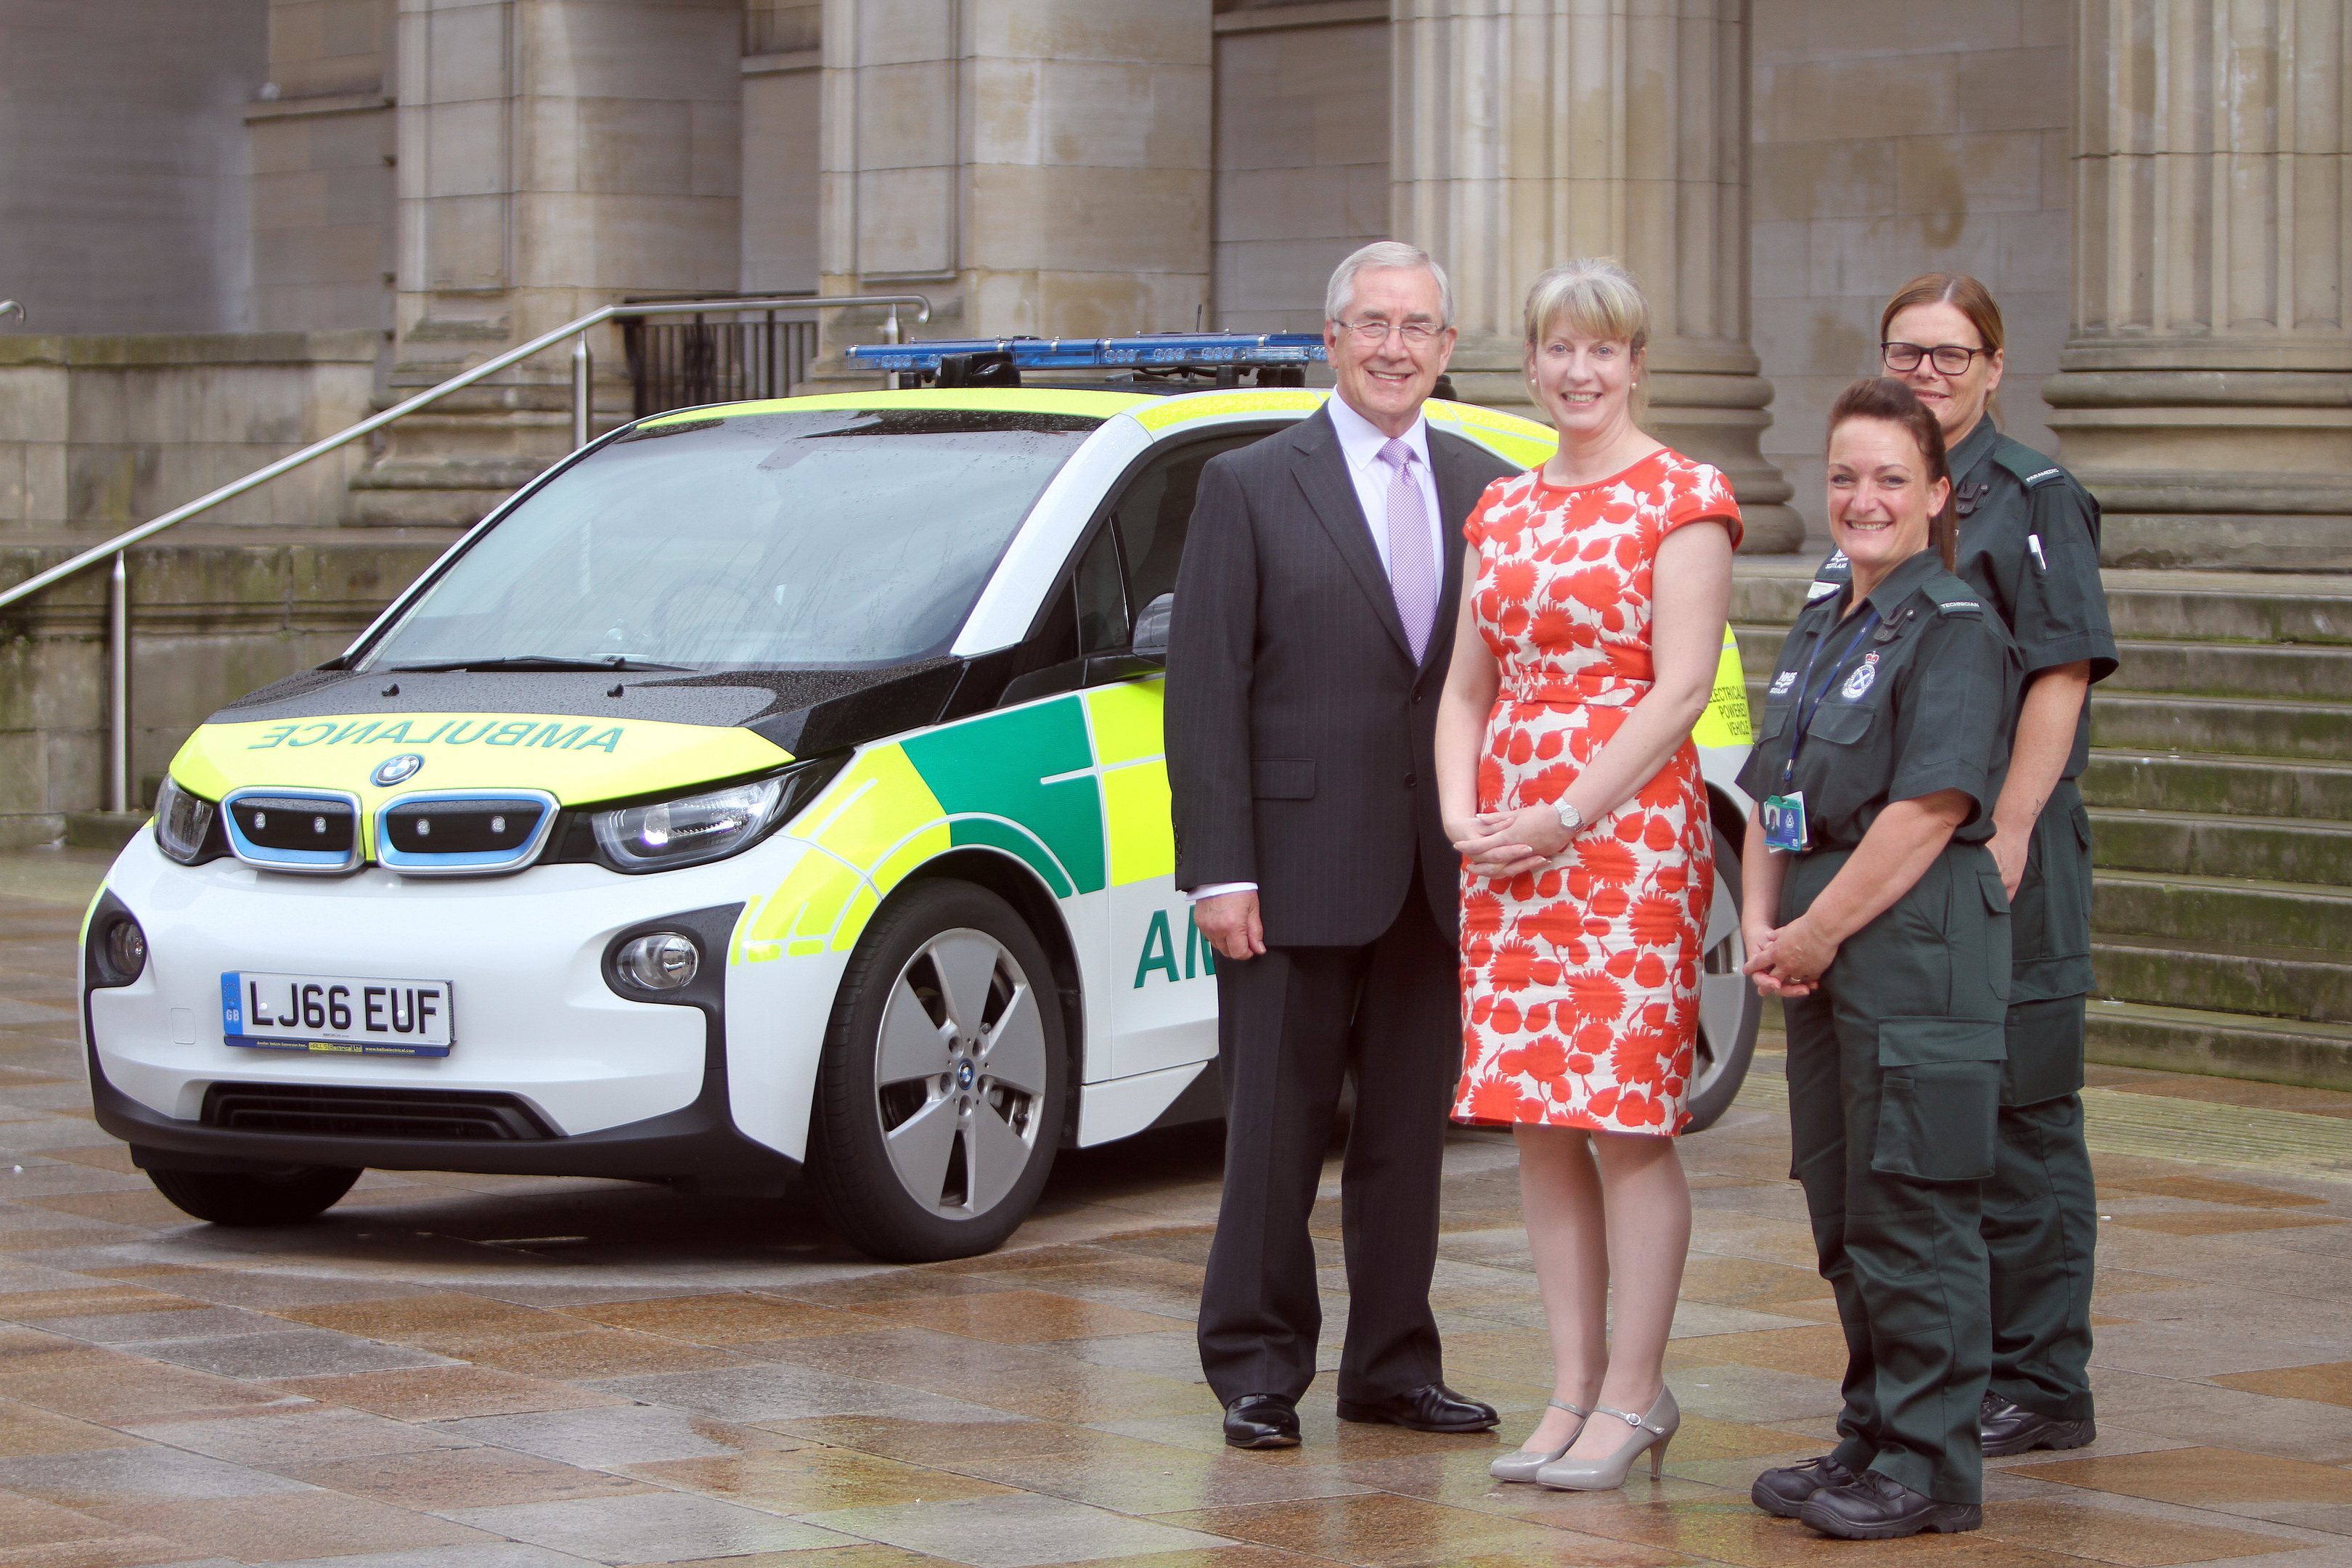 David Garbutt, chair of Scottish Ambulance Service, Shona Robison MSP, Fiona Reilly, paramedic and Lynne Findlay, technician.